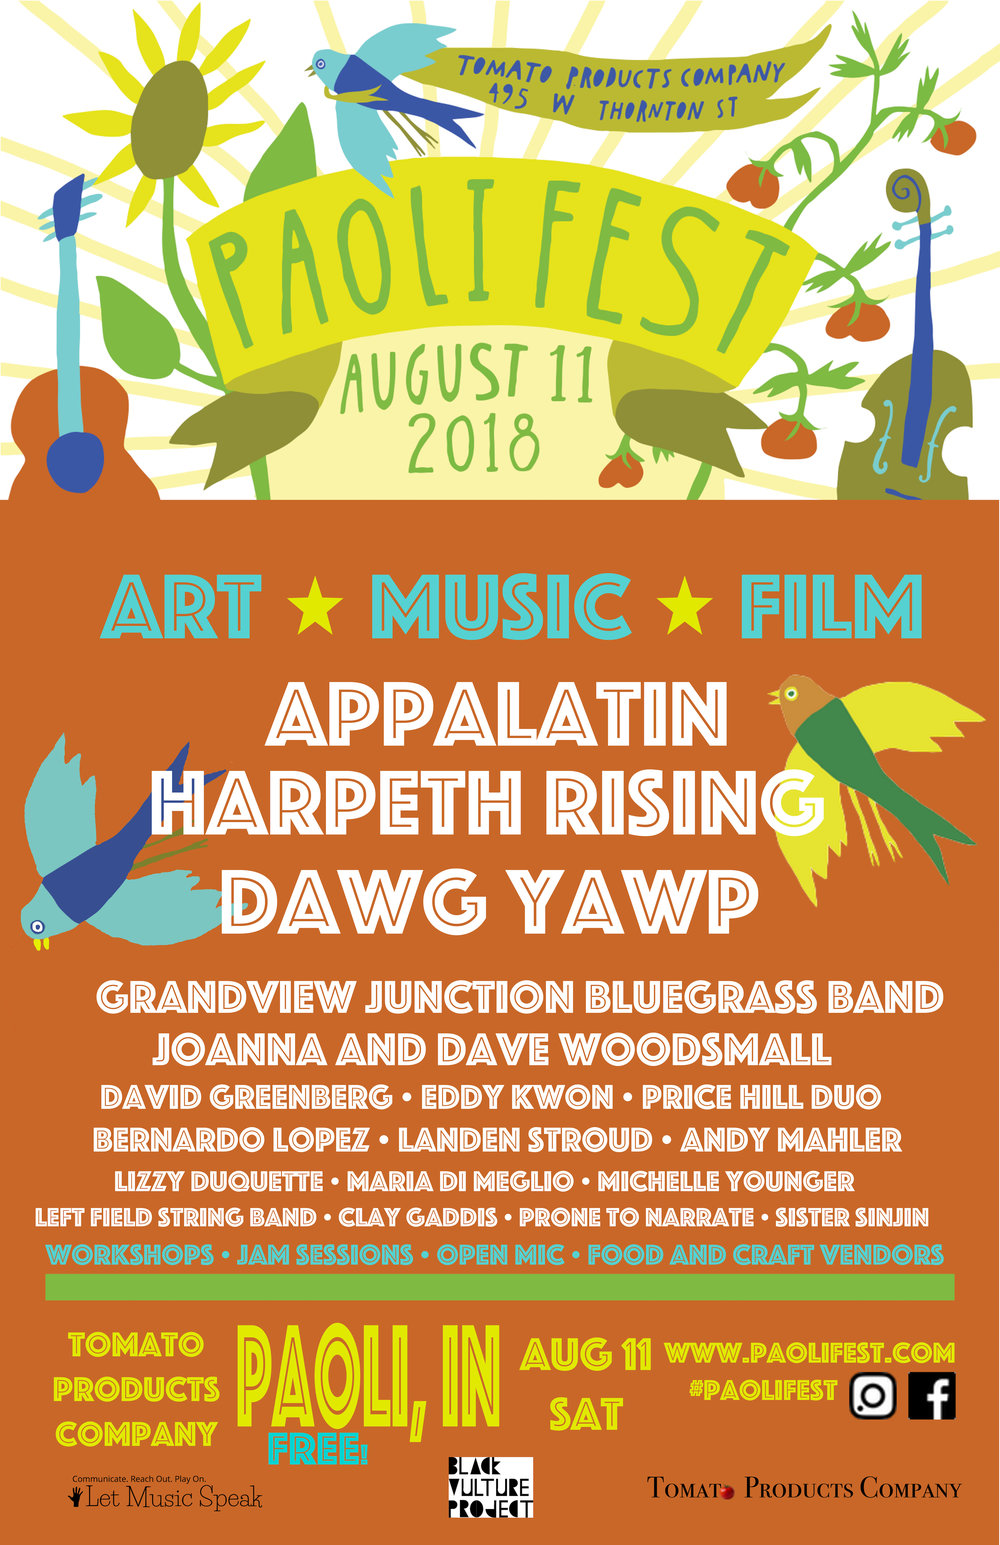 PaoliFest 11x17 poster - $7 - Bring yours to the festival to collect artist autographs!